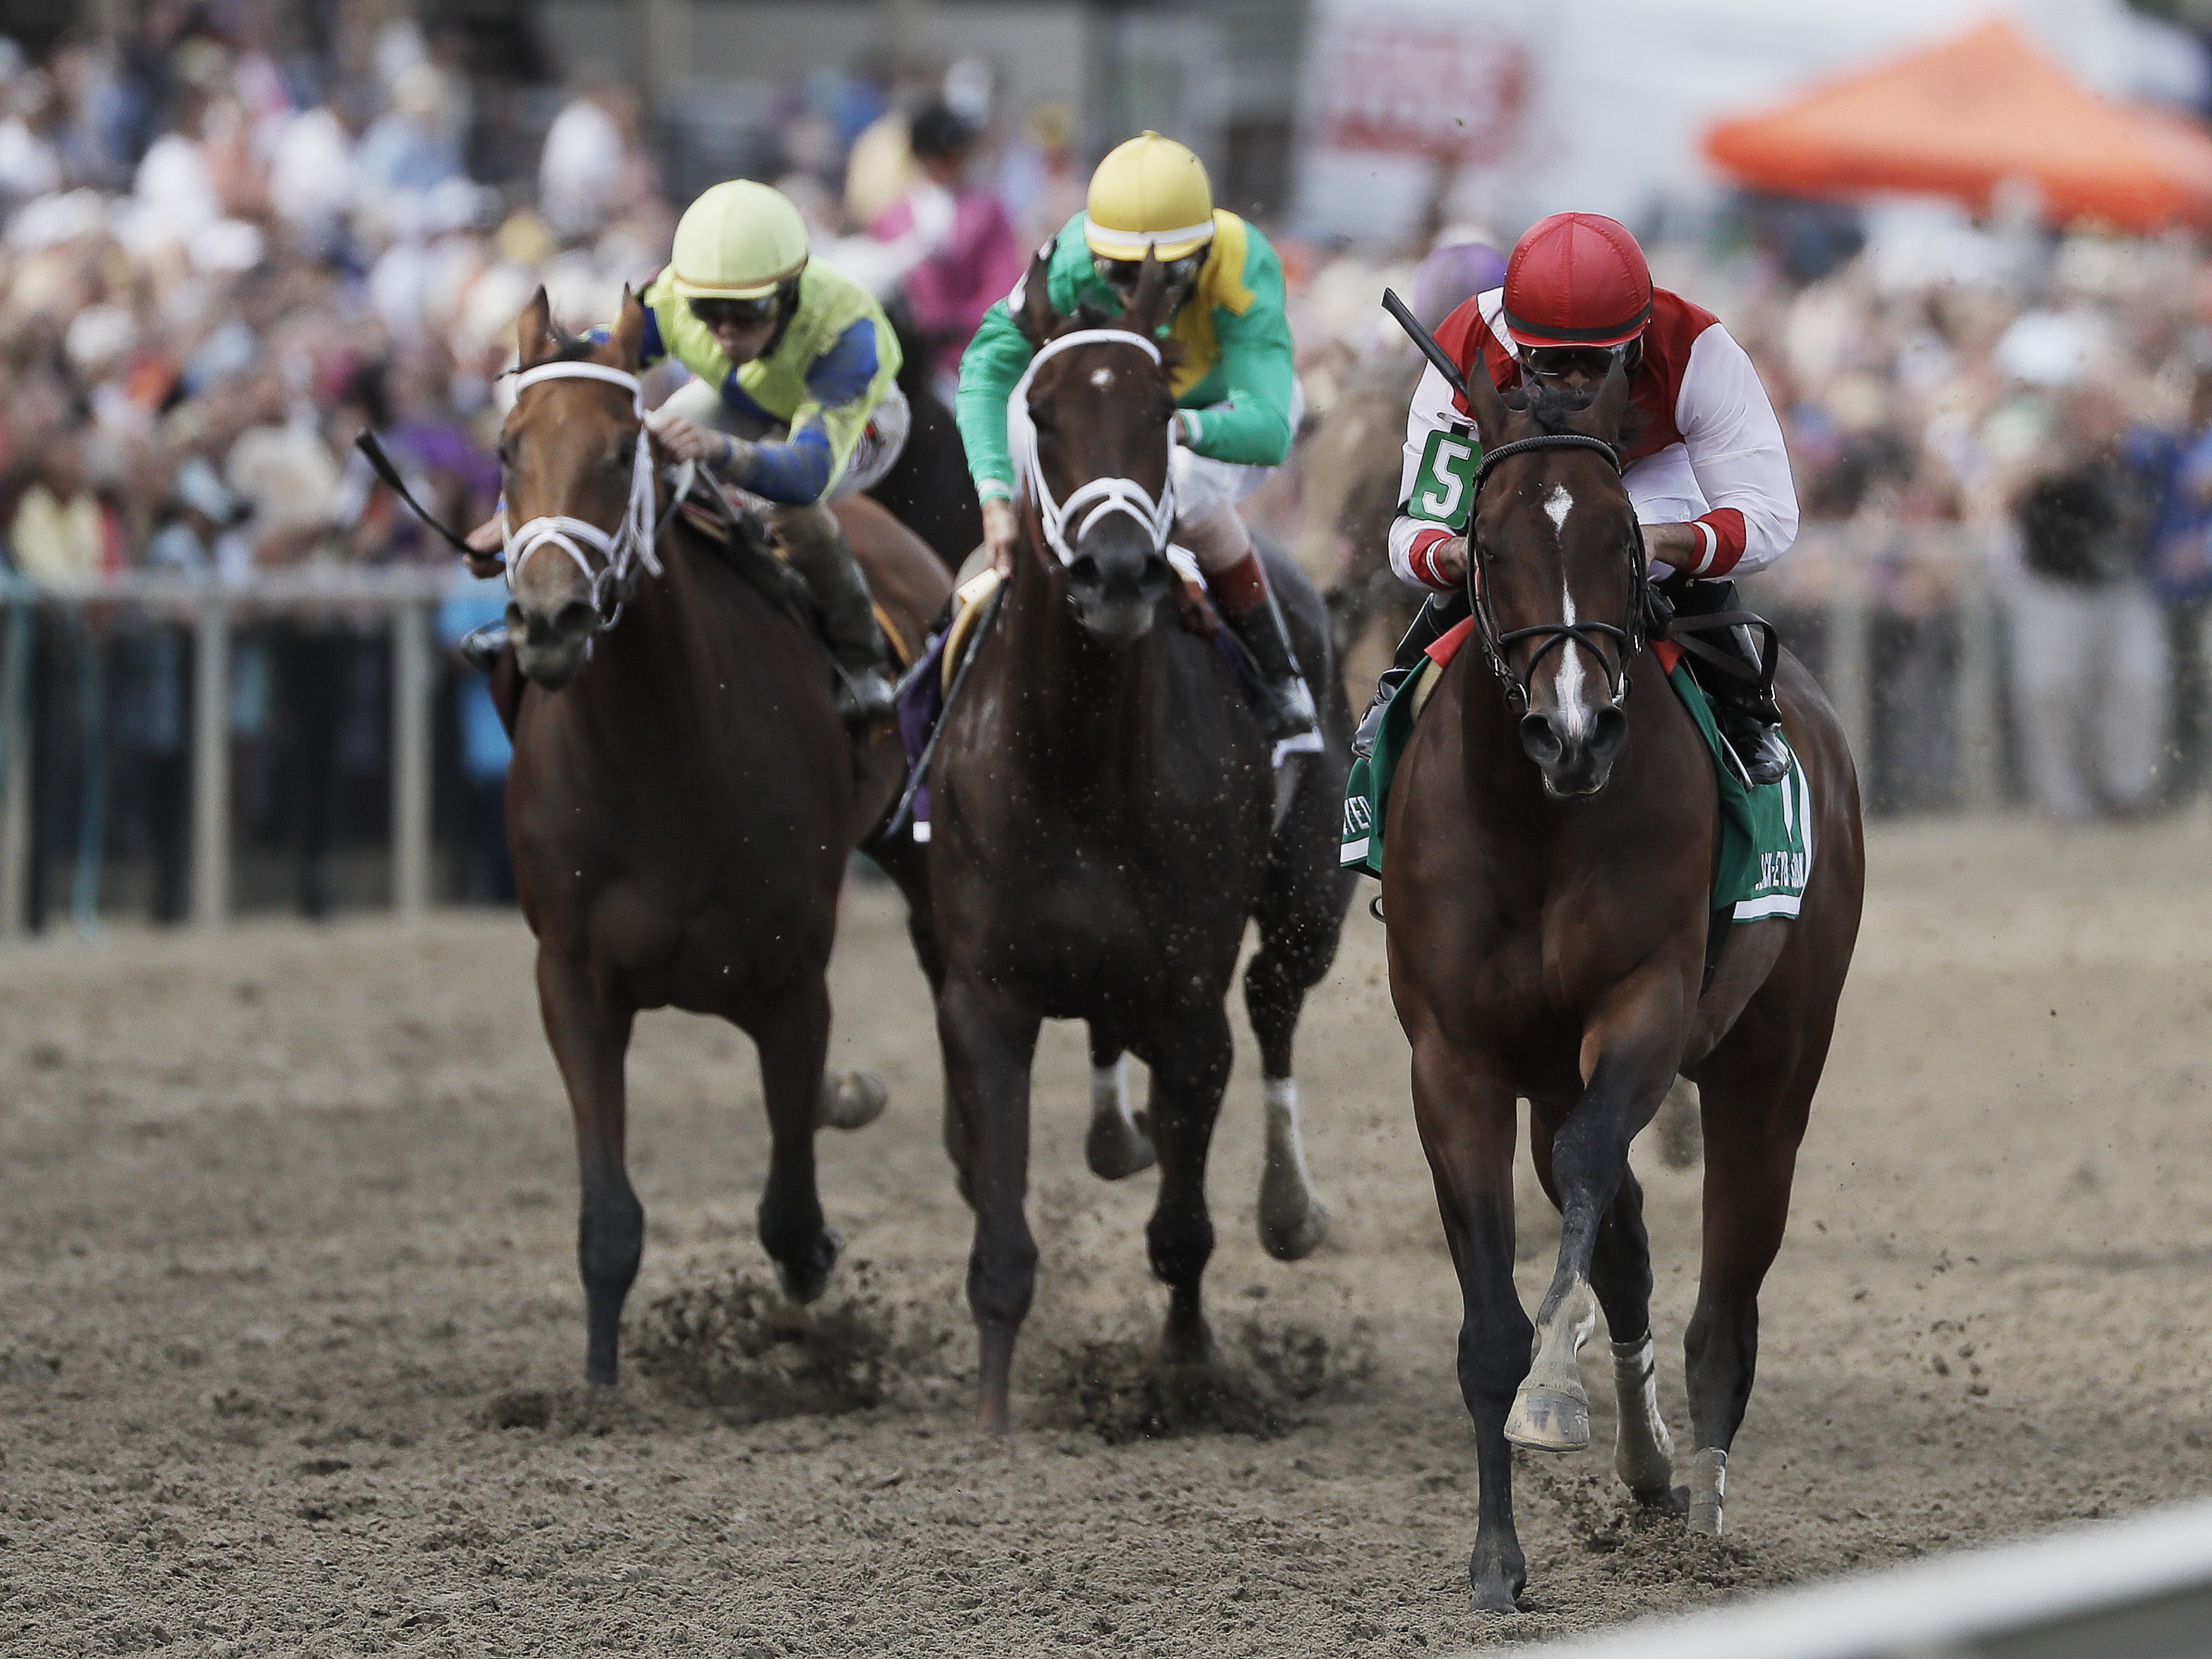 Go Maggie Go with Luis Saez aboard, right, wins the Black-Eyed Susan horse race at Pimlico Race Course as Kinsley Kisses with John Velazquez center and rider Brian Hernandez Jr. rides Ma Can Do It, come in Friday, May 20, 2016, in Baltimore. The 141st Pre